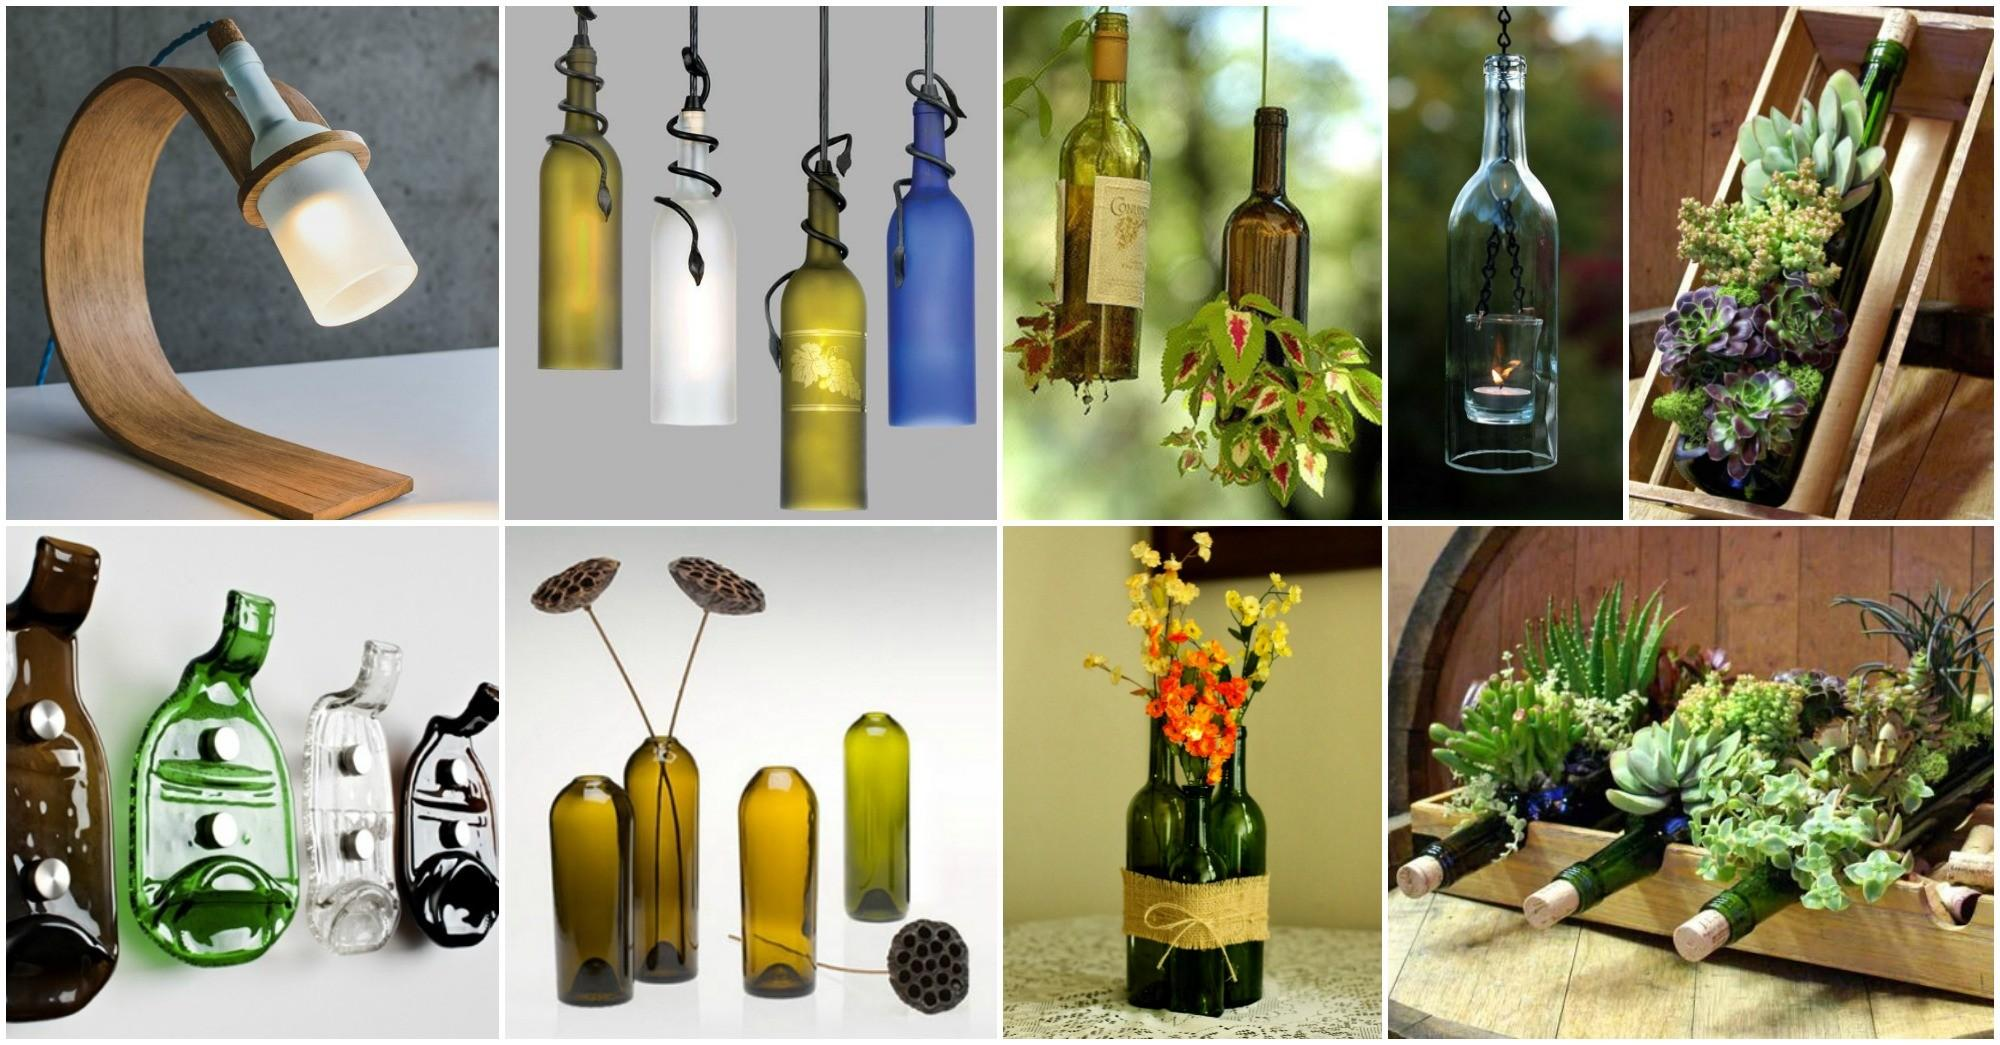 Diy Awesome Bottle Crafts Beautify Your Home